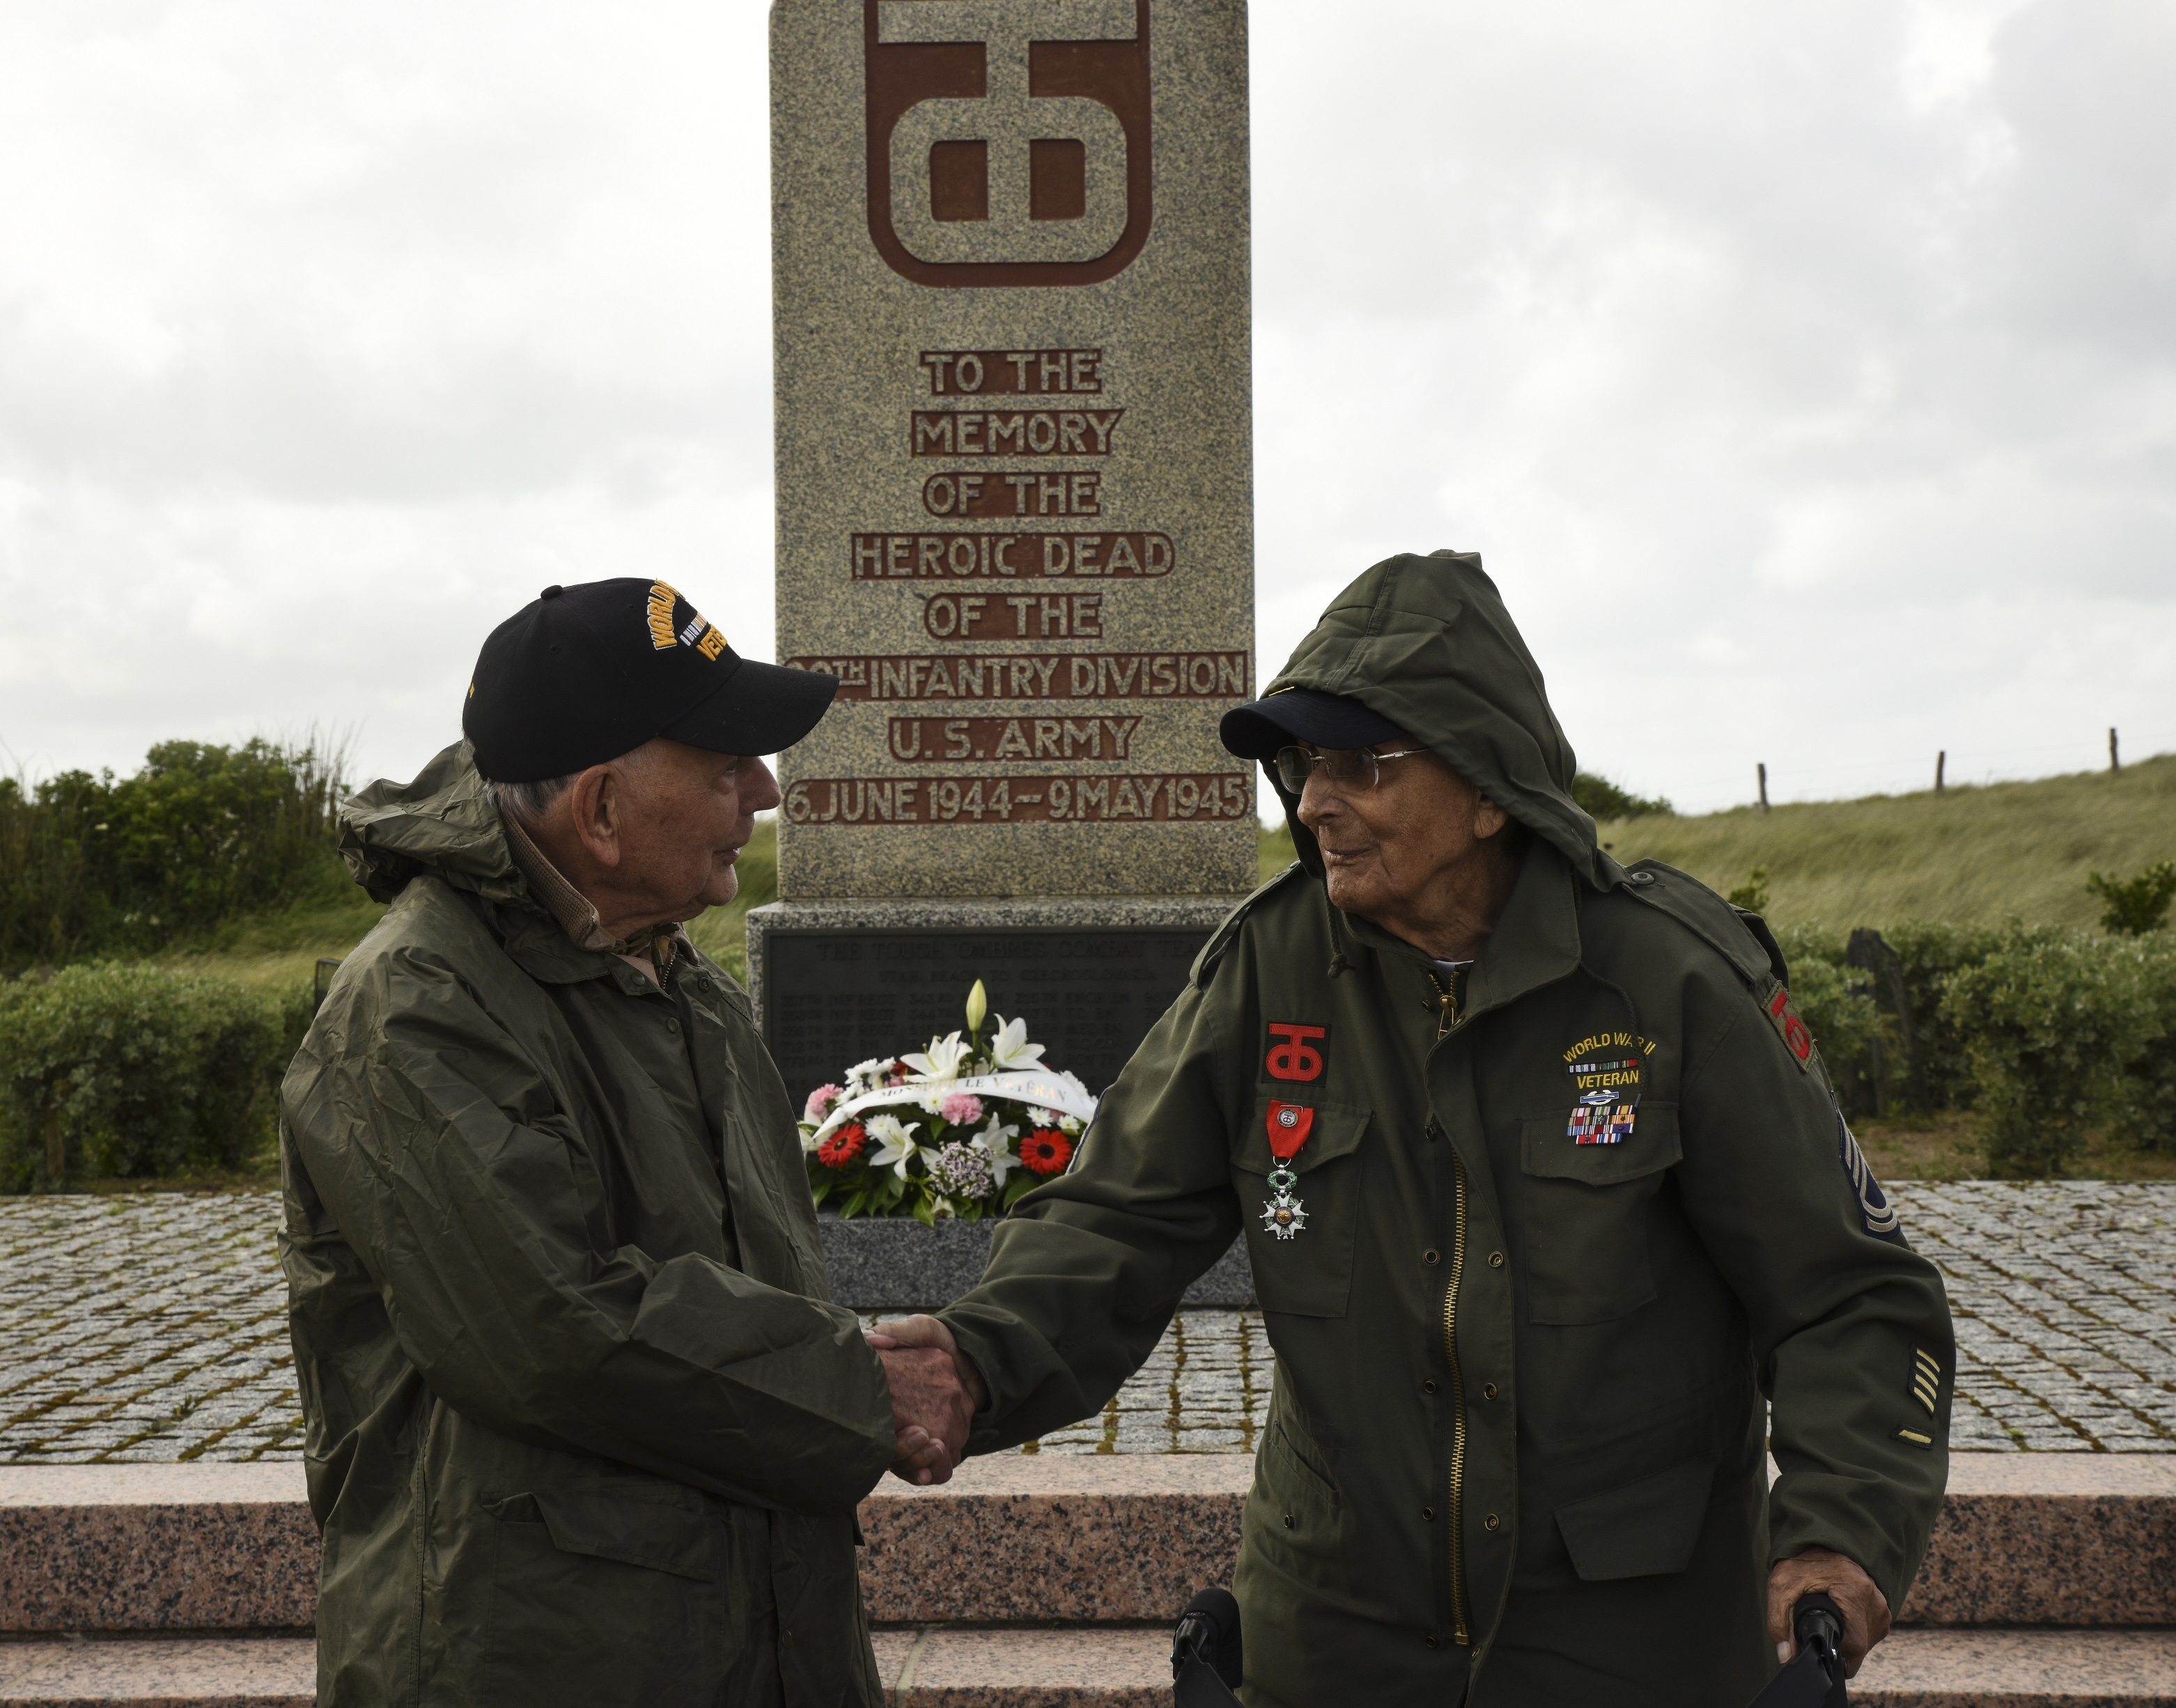 World War II veterans, Eugene Kliendl and Milton 'Milt' Staley, shake hands after laying a wreath at the foot of the 90th Infantry Division Monument, June 6, 2017, in Normandy, France. Kliendl and Staley both served with the division during D-Day.This ceremony commemorates the 73rd anniversary of D-Day, the largest multi-national amphibious landing and operational military airdrop in history, and highlights the U.S.' steadfast commitment to European allies and partners. Overall, approximately 400 U.S. servicemembers from units in Europe and the U.S. are participating in ceremonial D-Day events from May 31 to June 7, 2017.